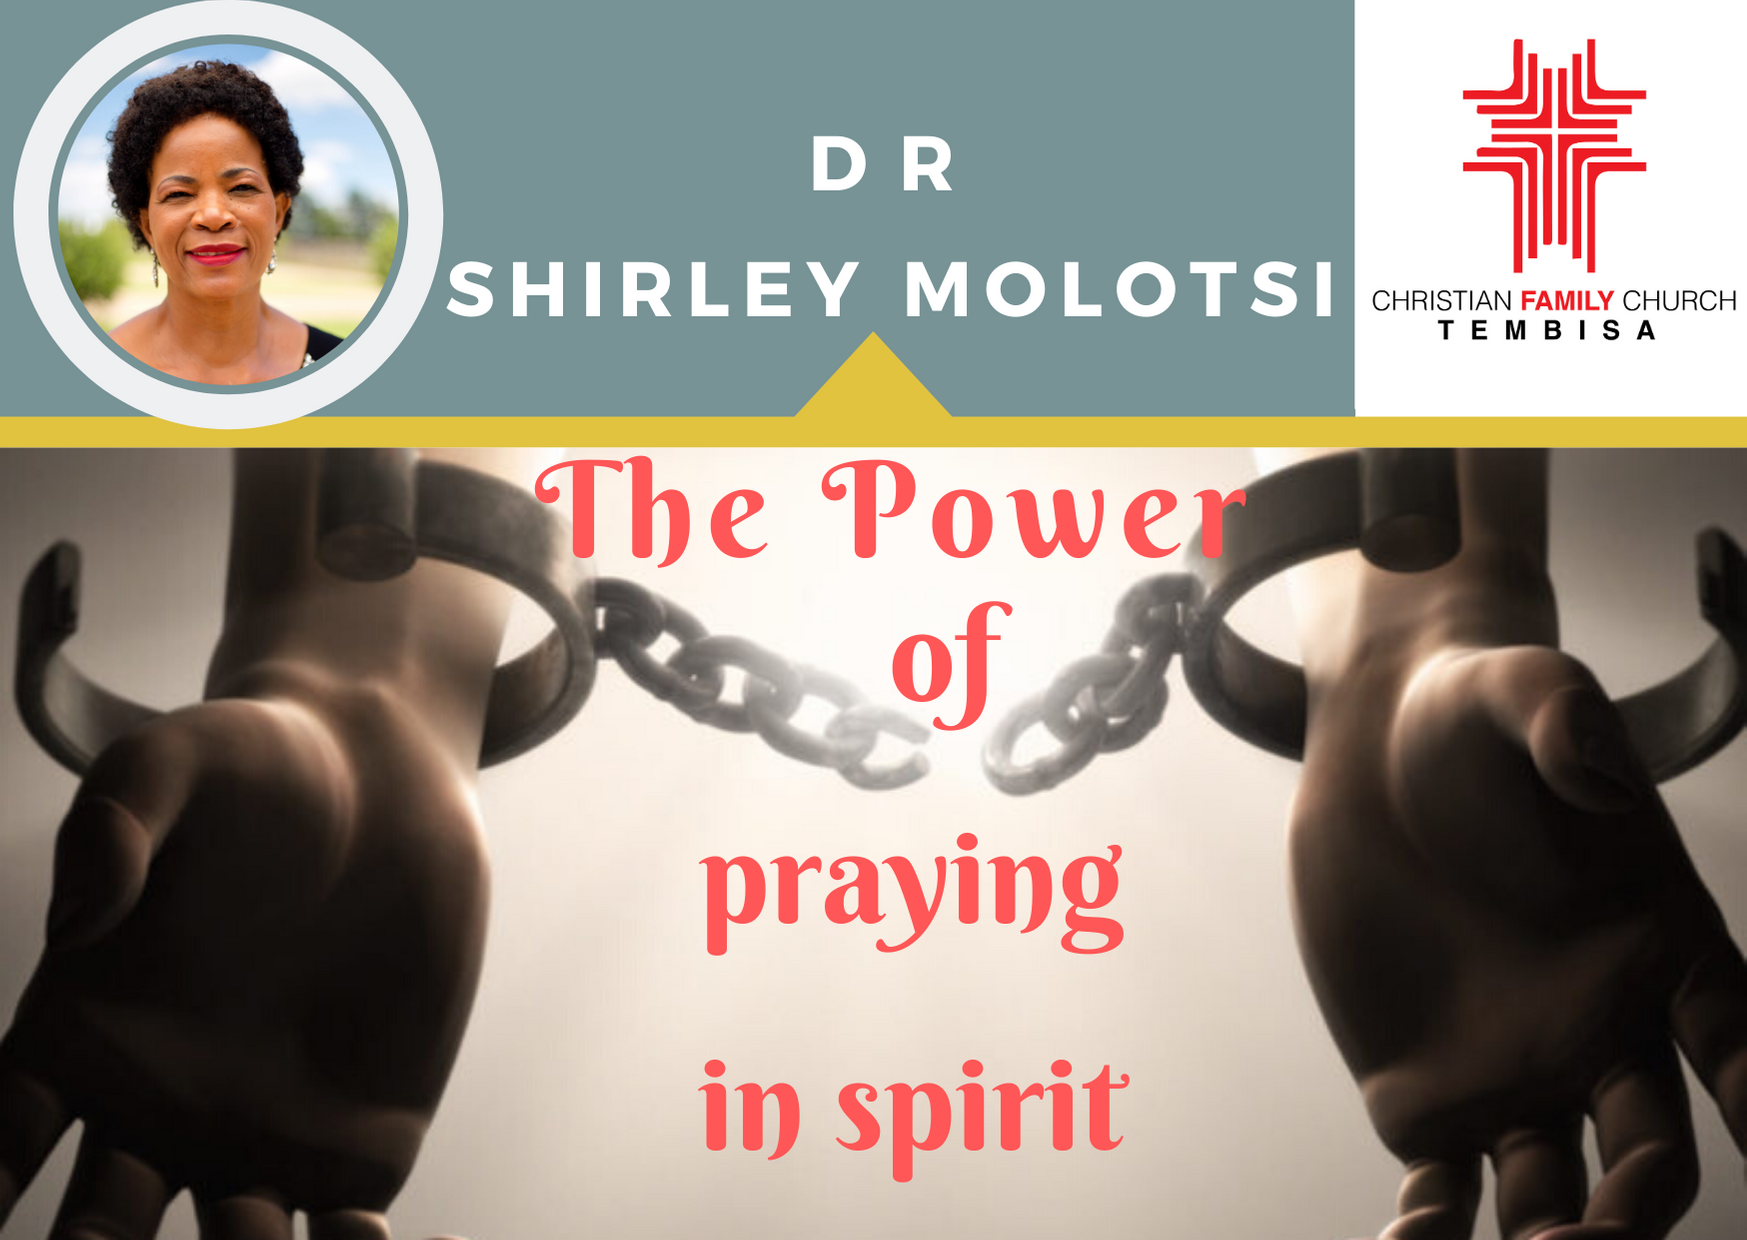 The Power of praying in spirit